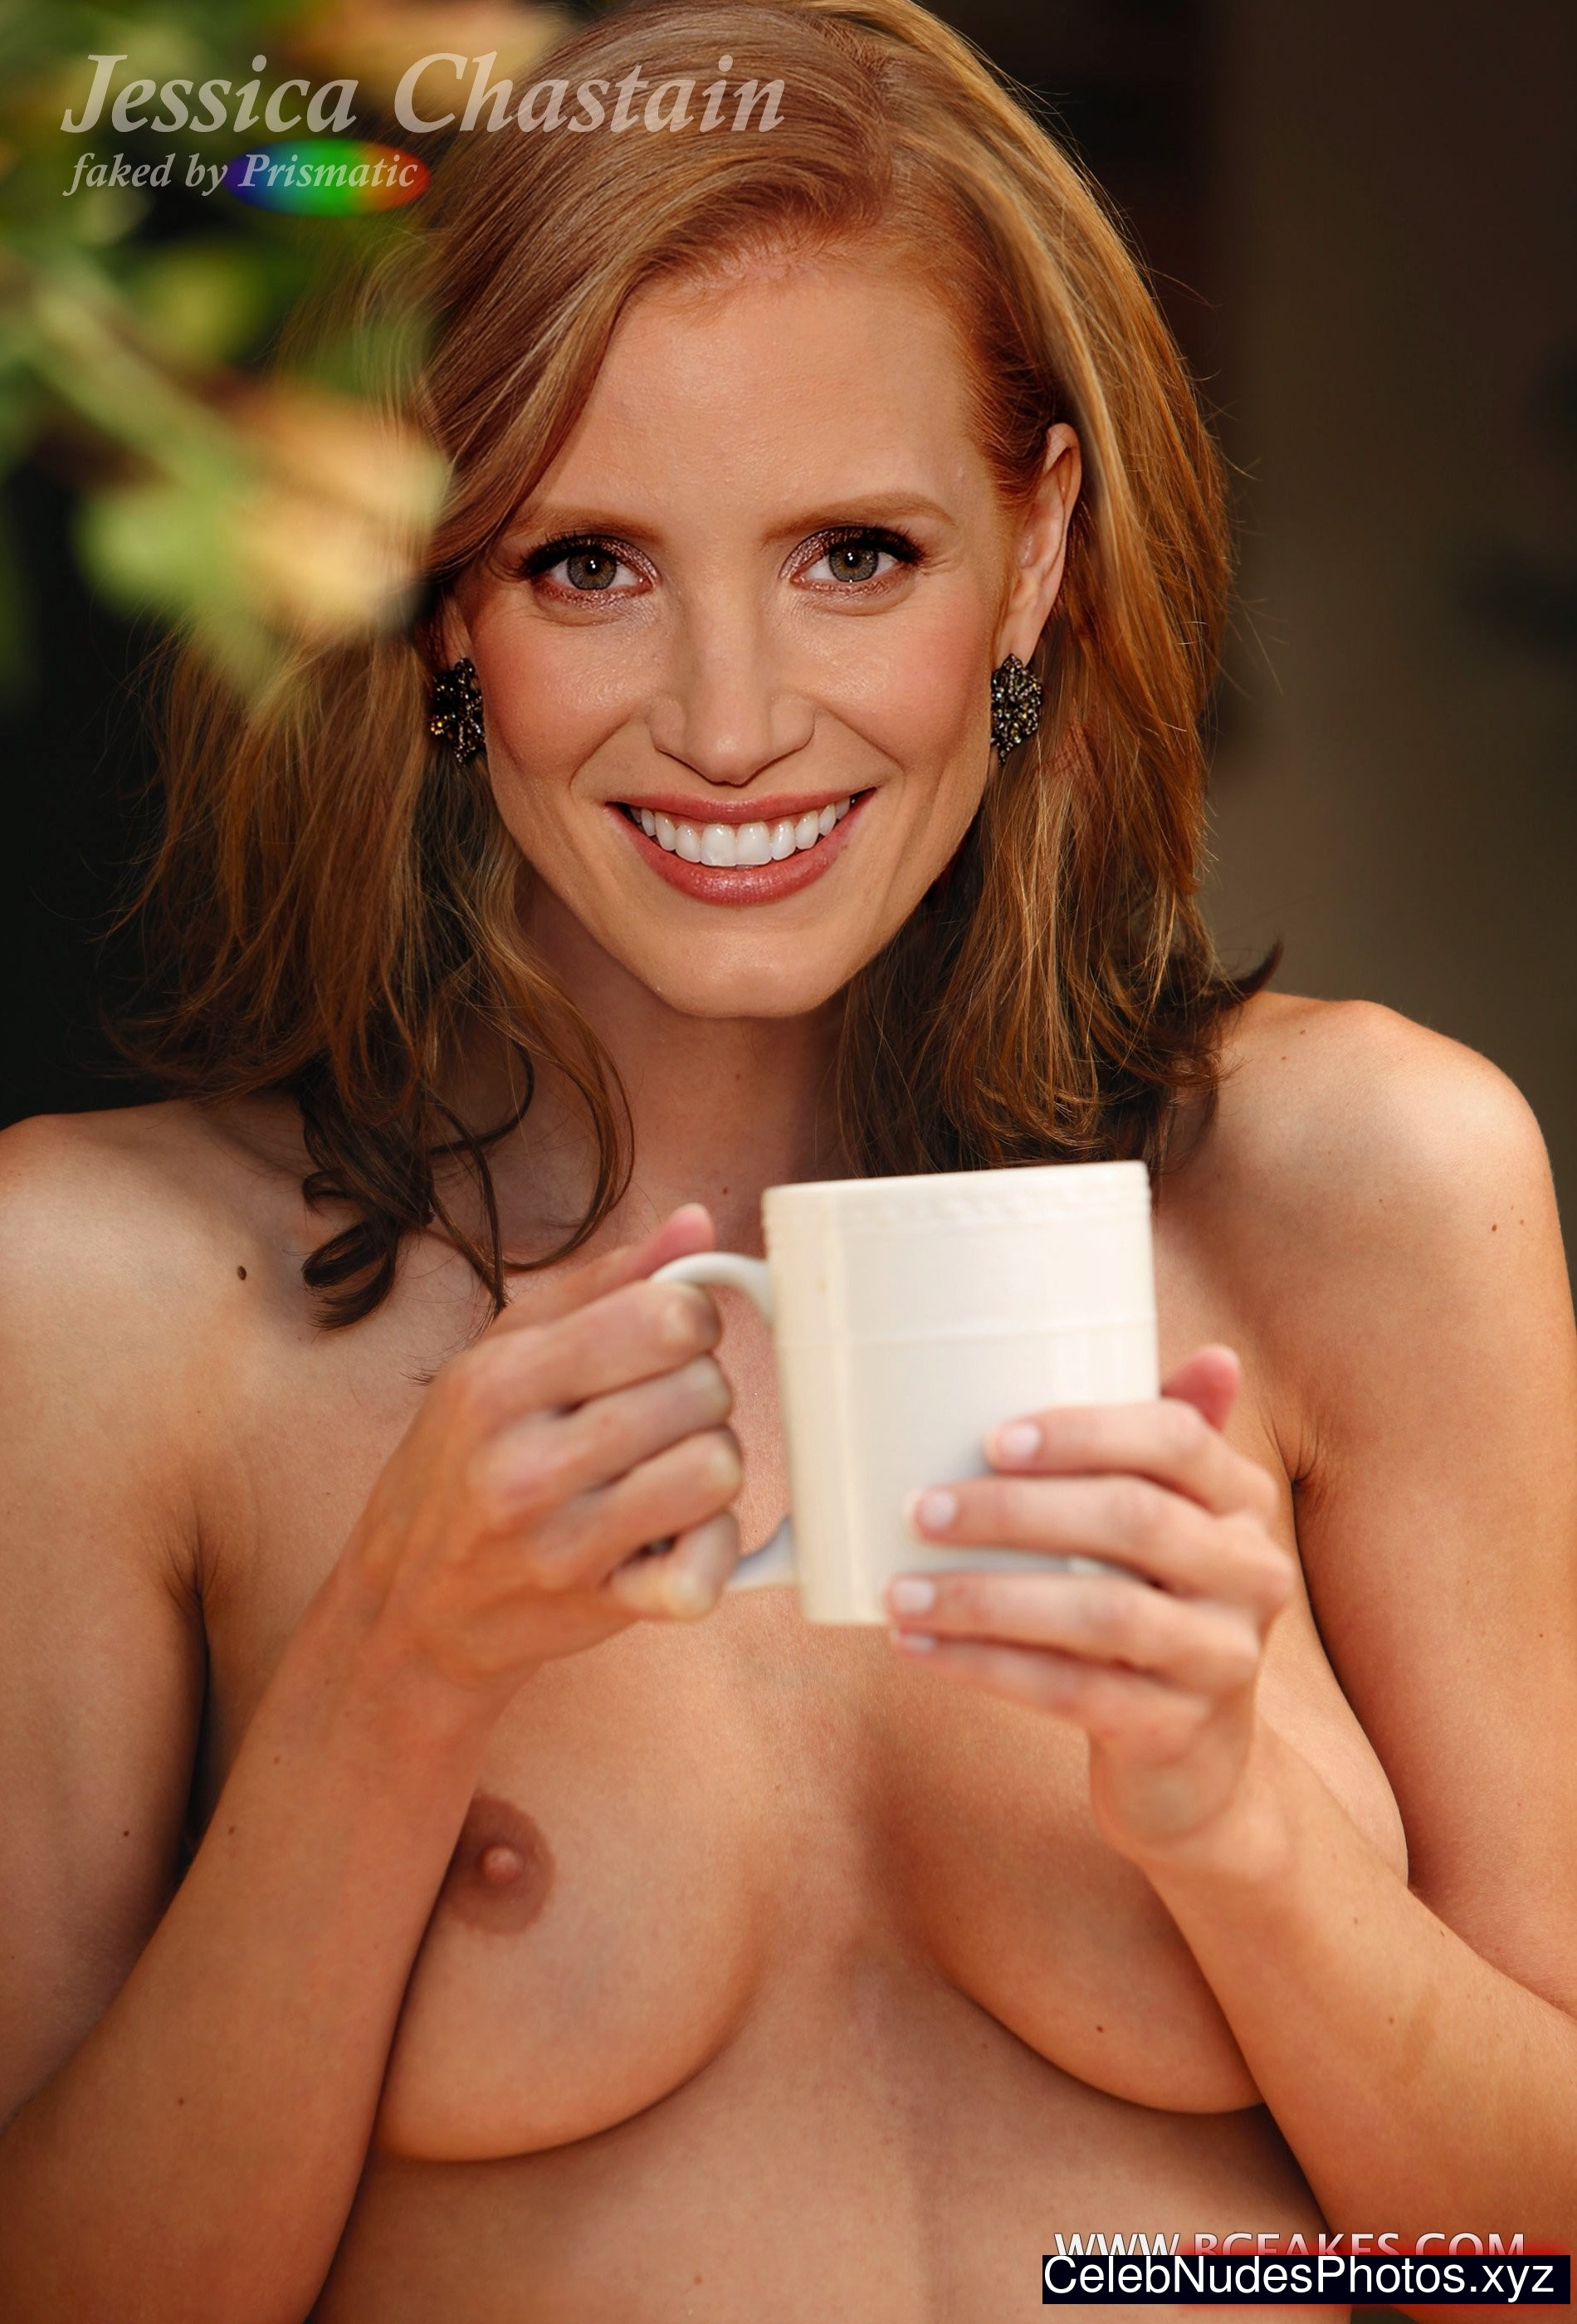 jessica chastain fake nude